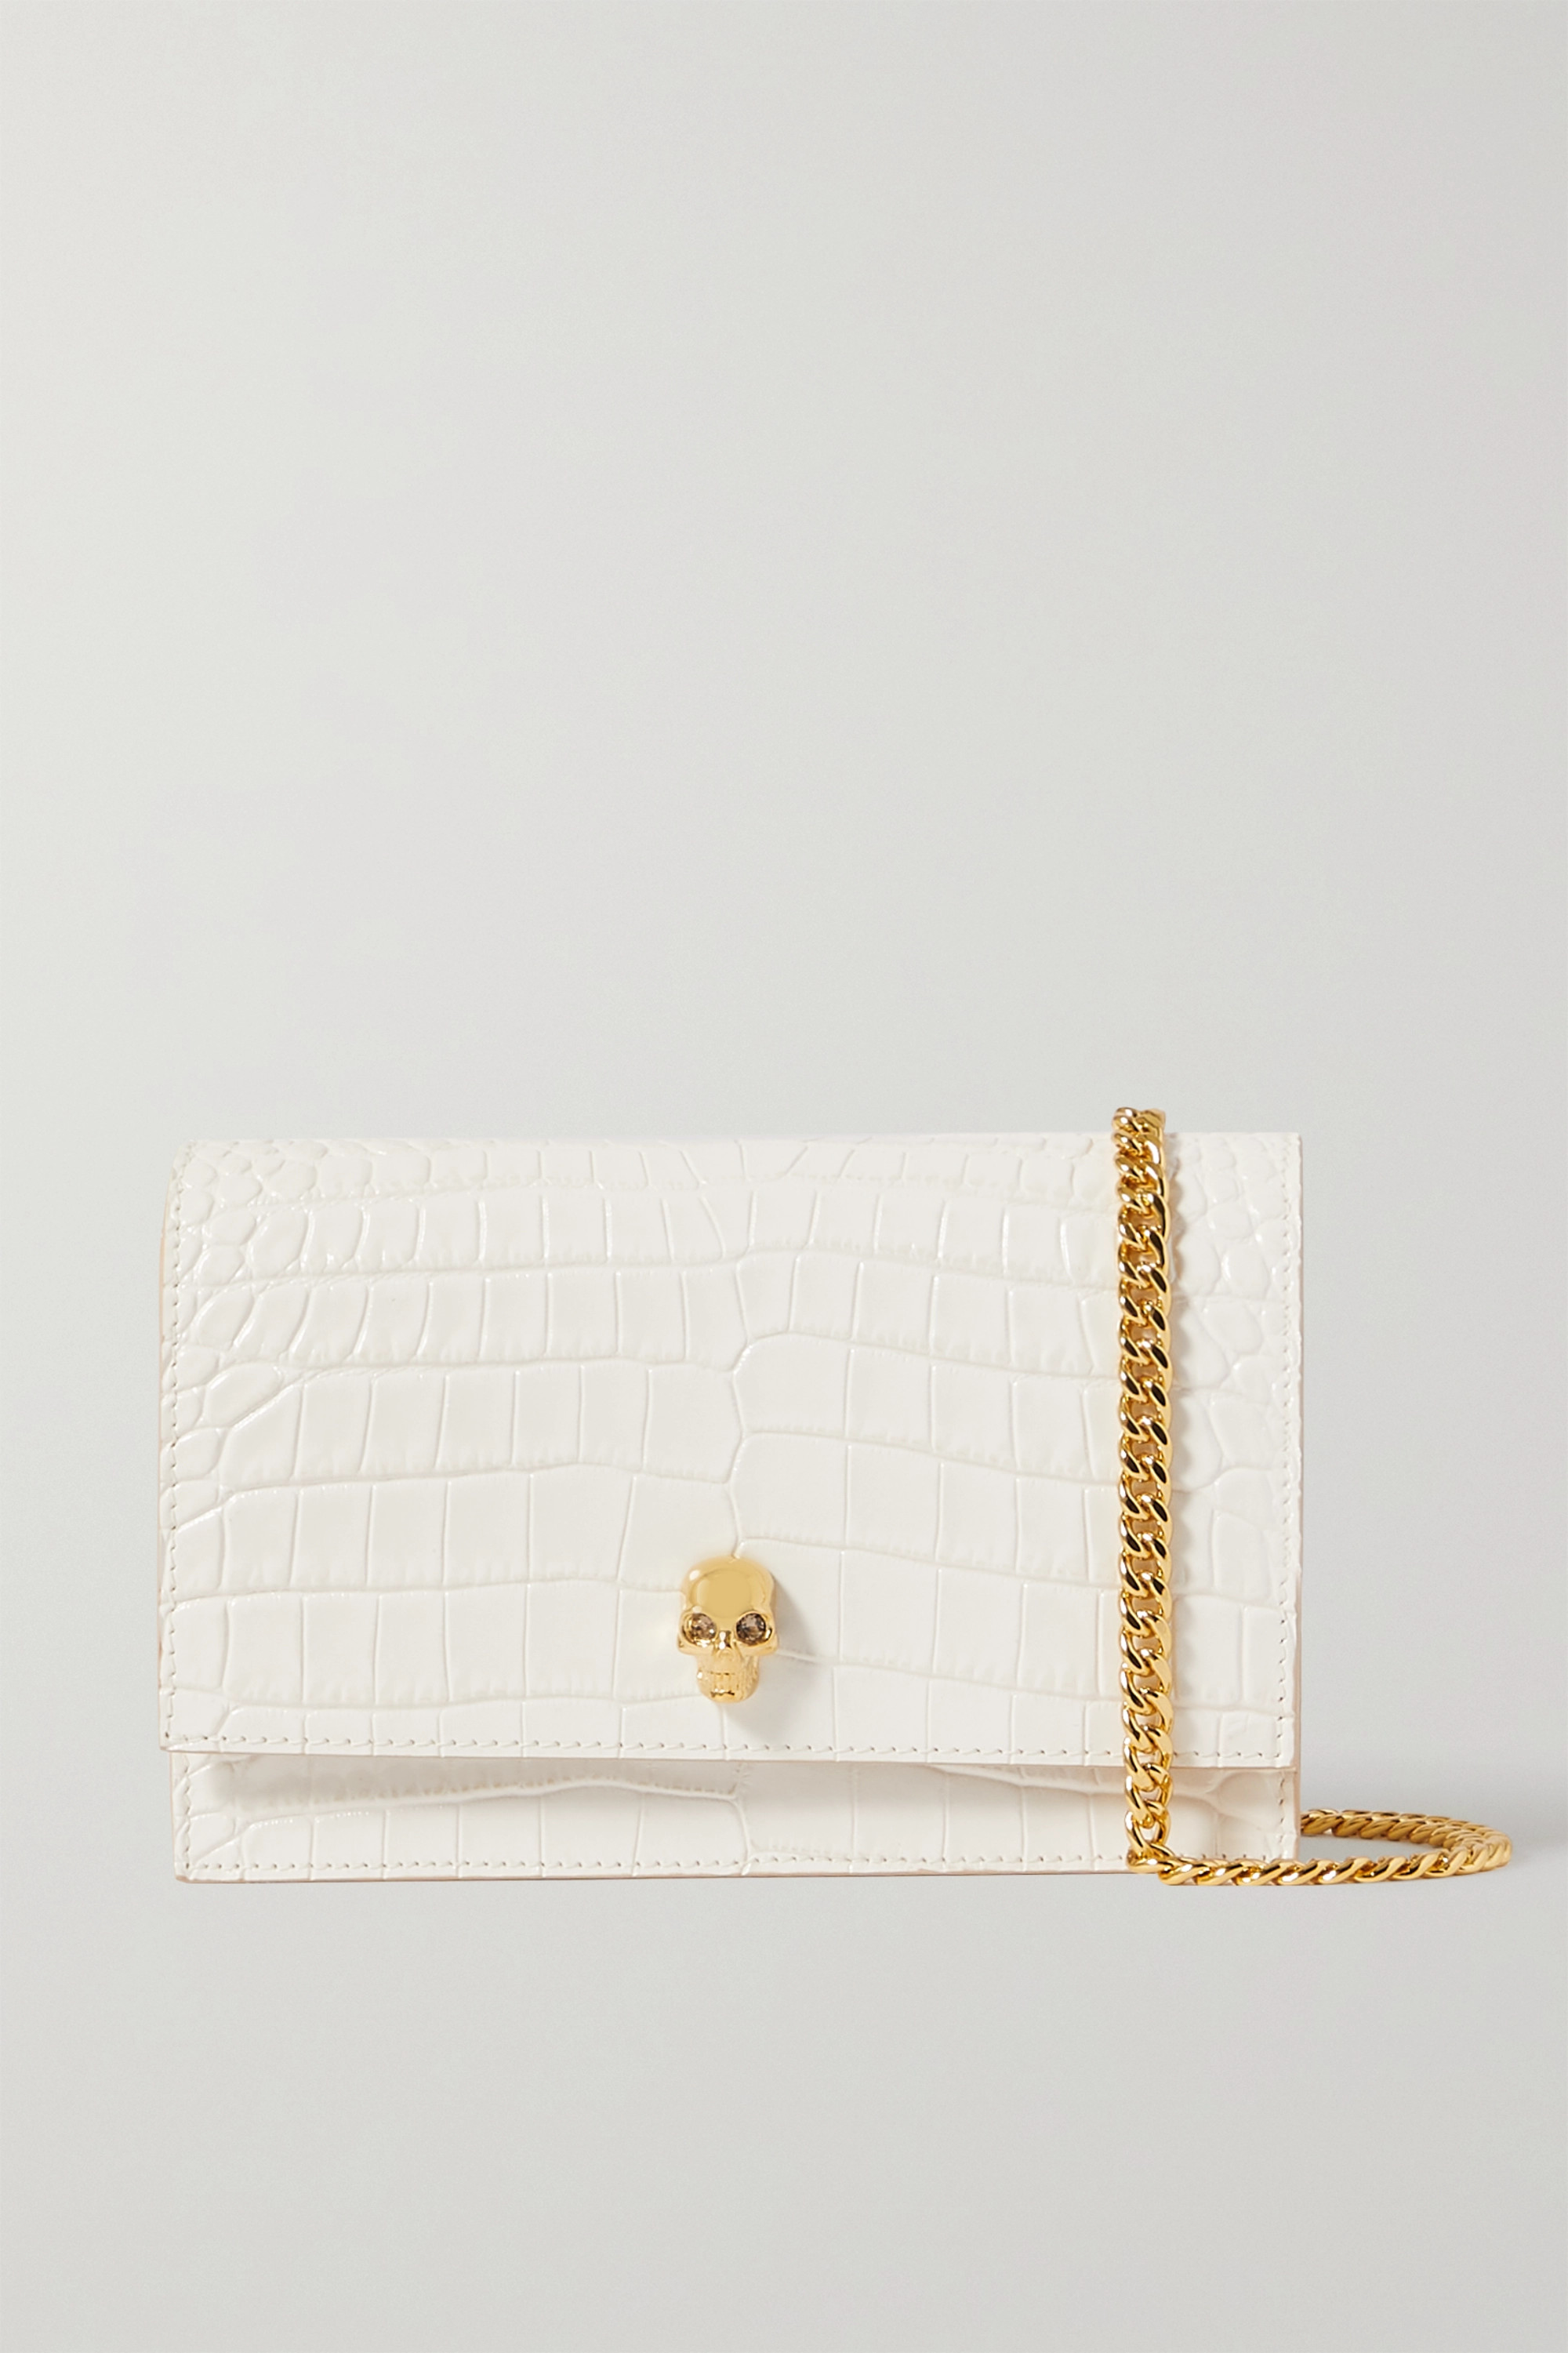 Alexander McQueen - Skull mini embellished croc-effect leather shoulder bag